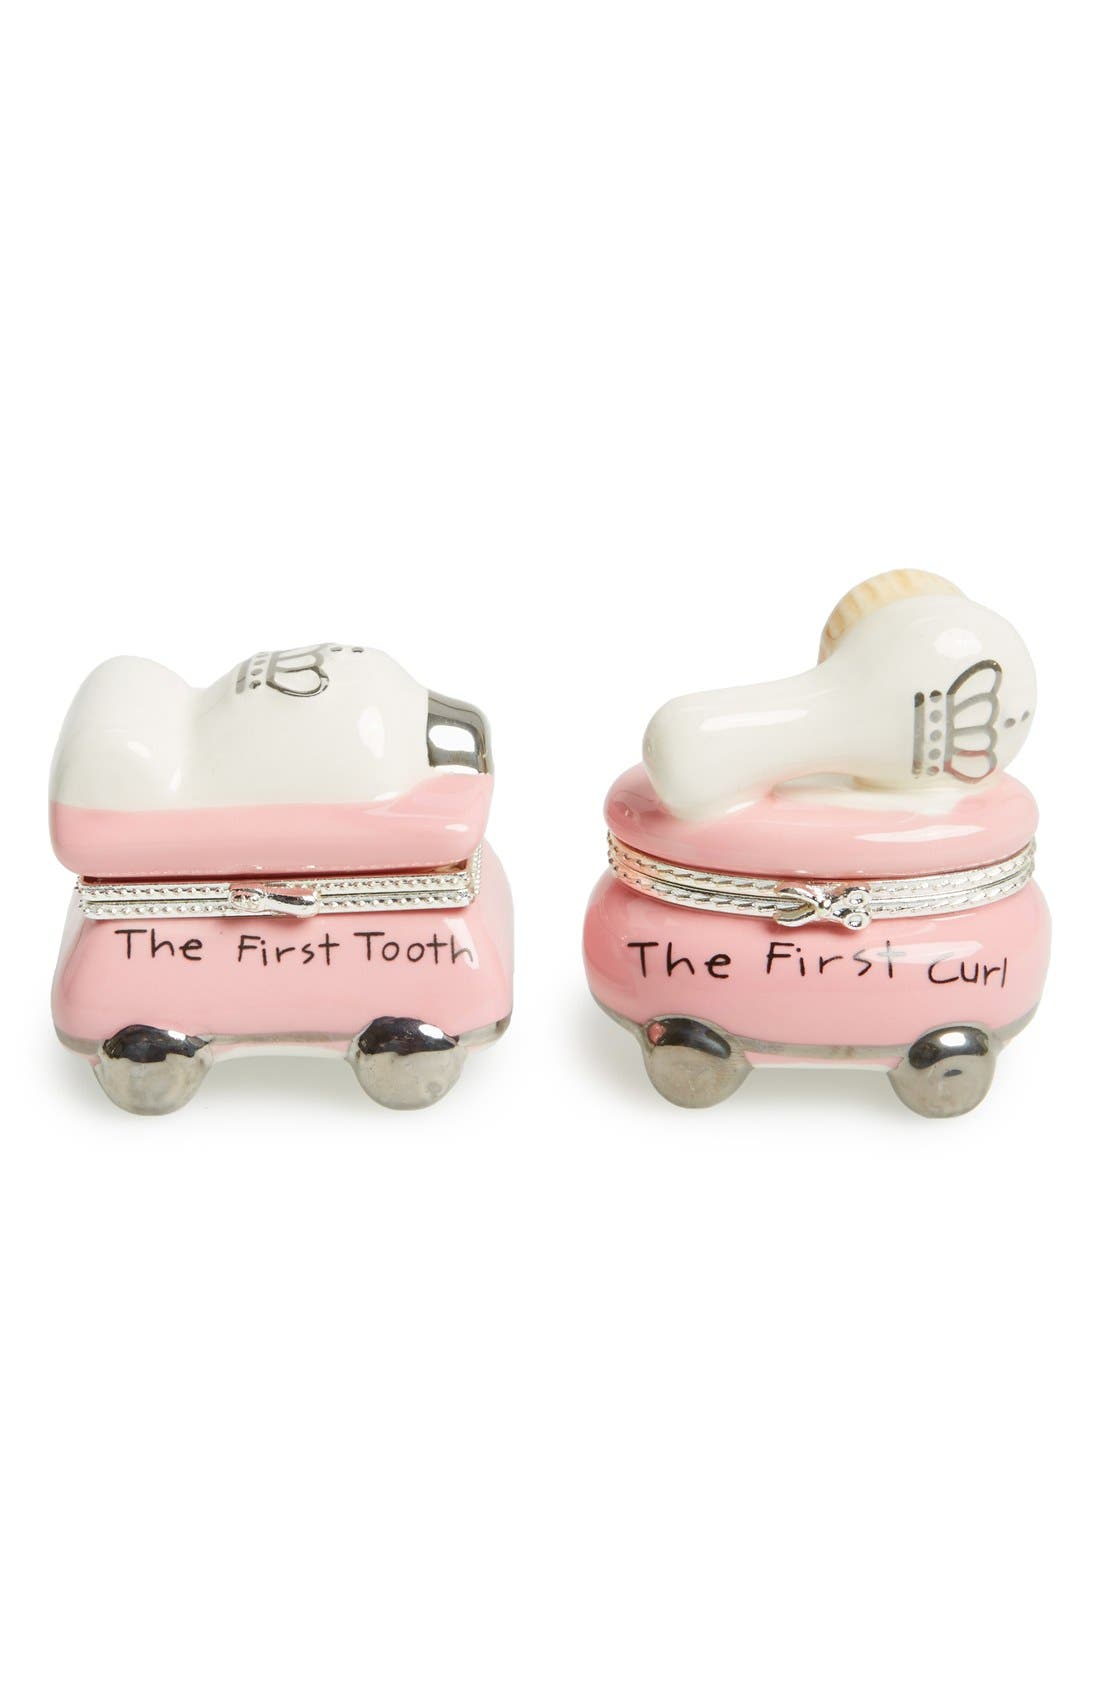 Alternate Image 1 Selected - Mud Pie 'Princess' First Tooth & Curl Treasure Box Set